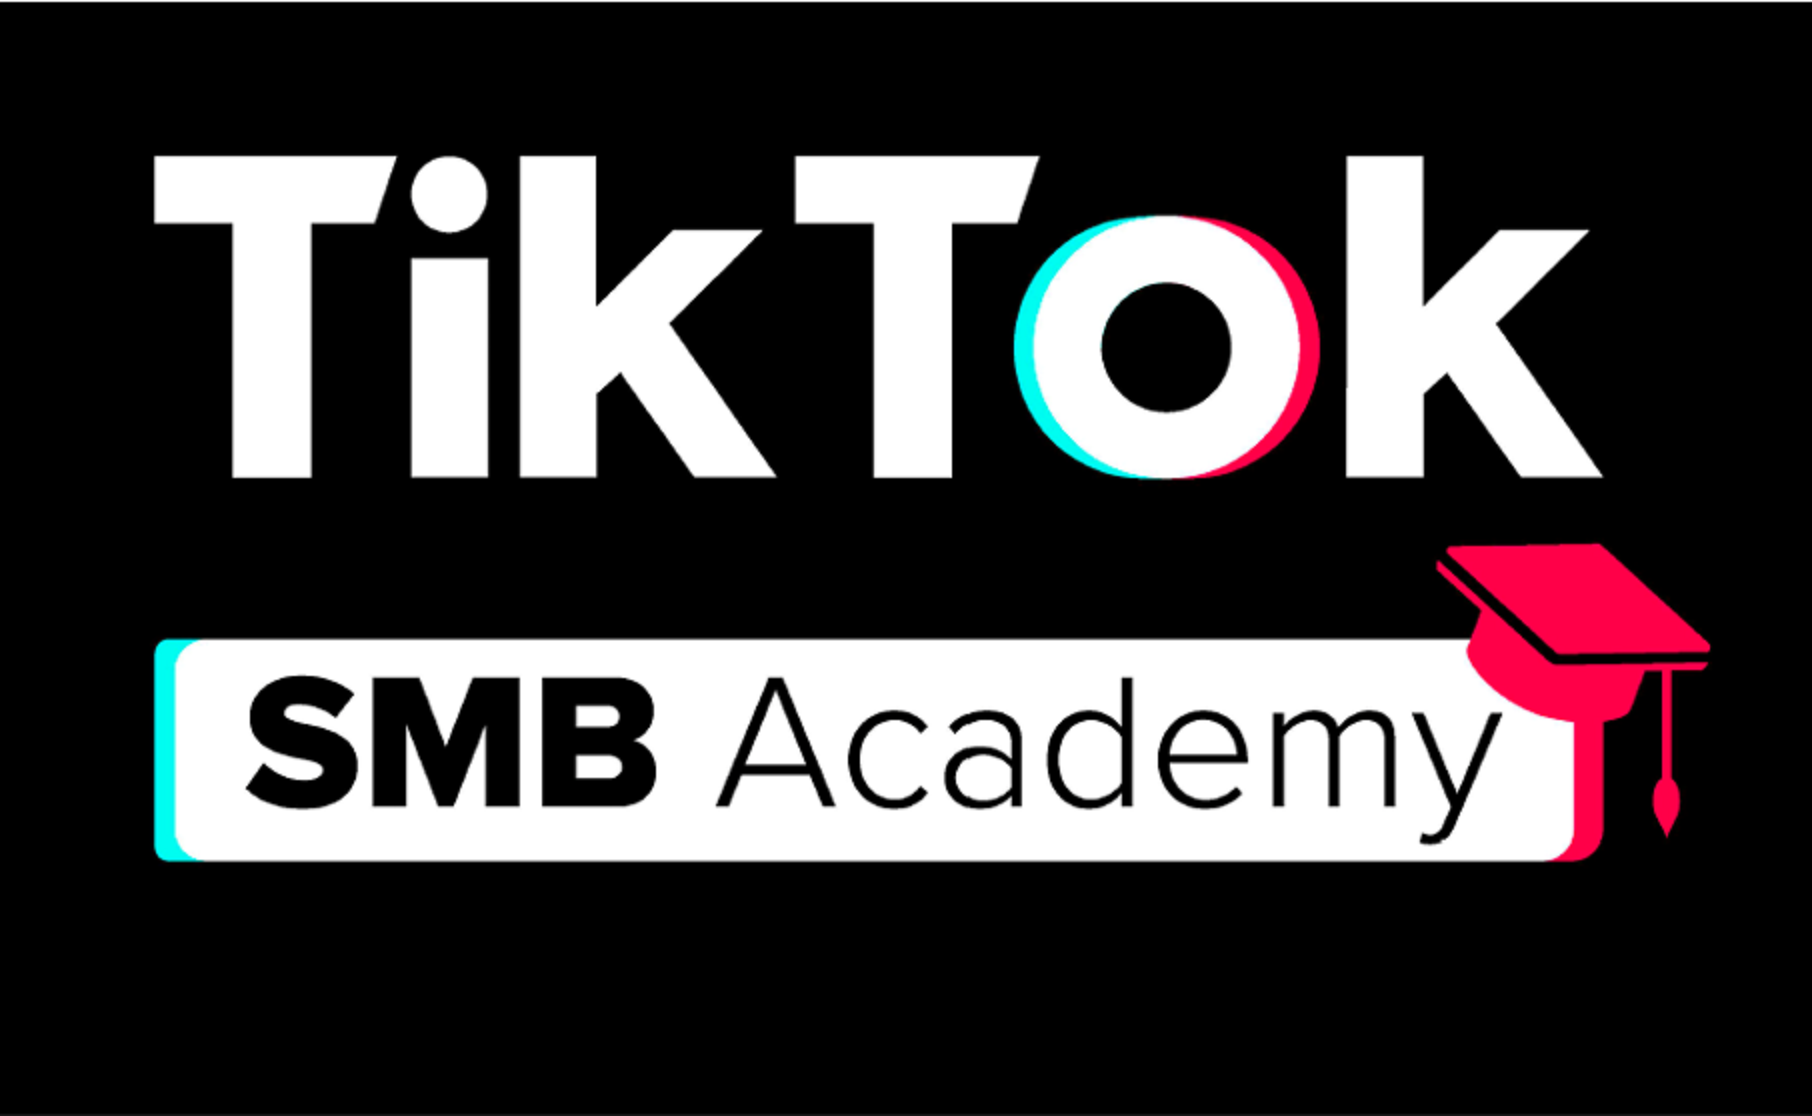 TikTok For Business launches first-of-its-kind SMB Academy in MENAT, empowering businesses to unlock their potential and expedite growth